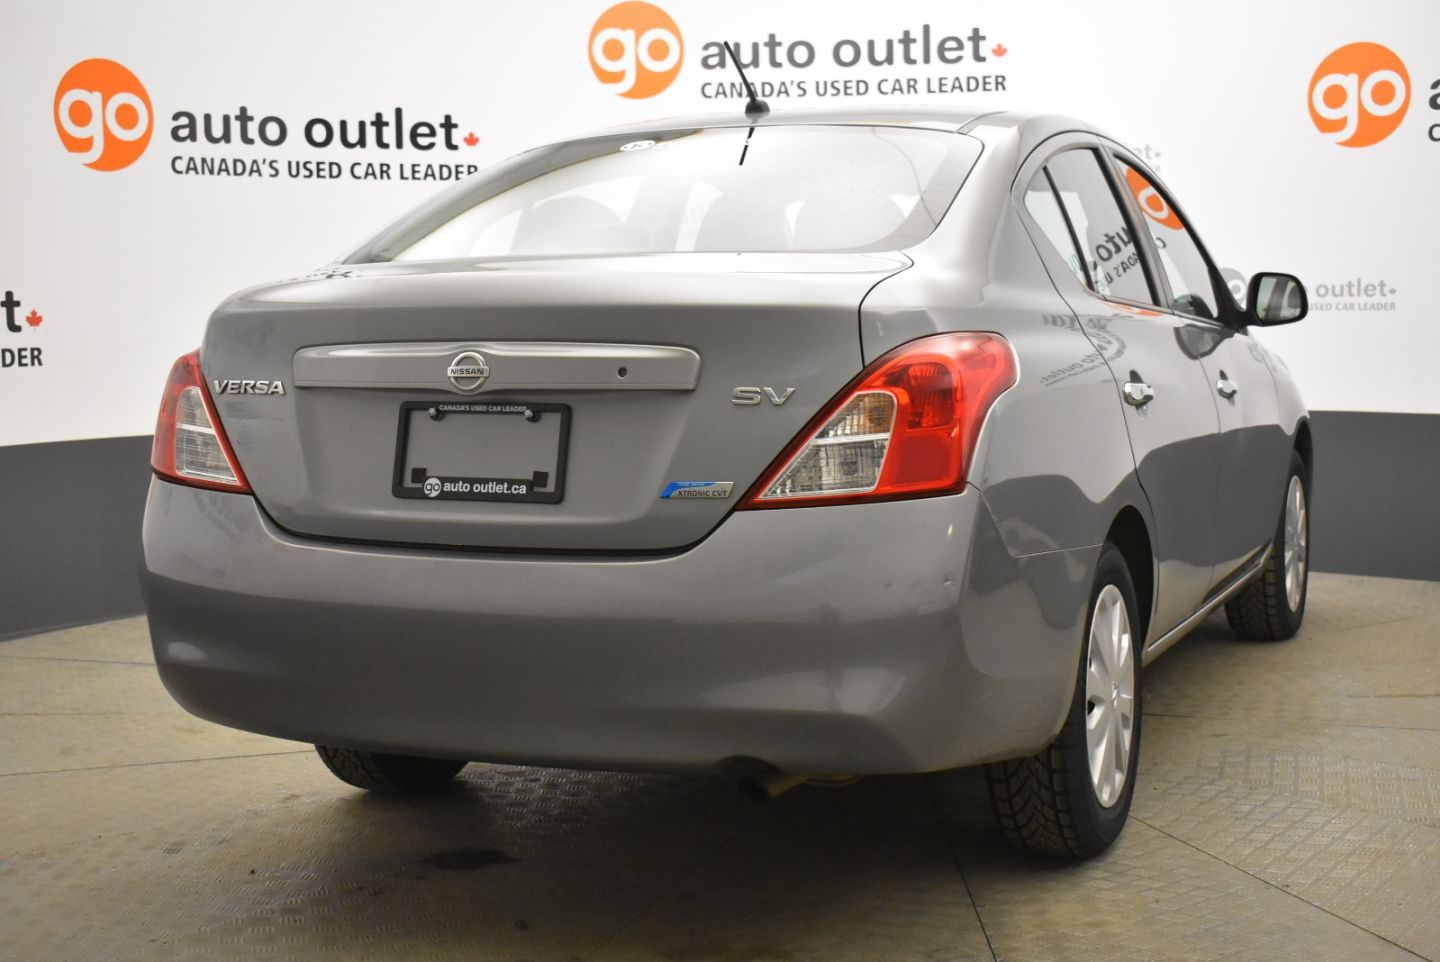 2012 Nissan Versa SV for sale in Leduc, Alberta